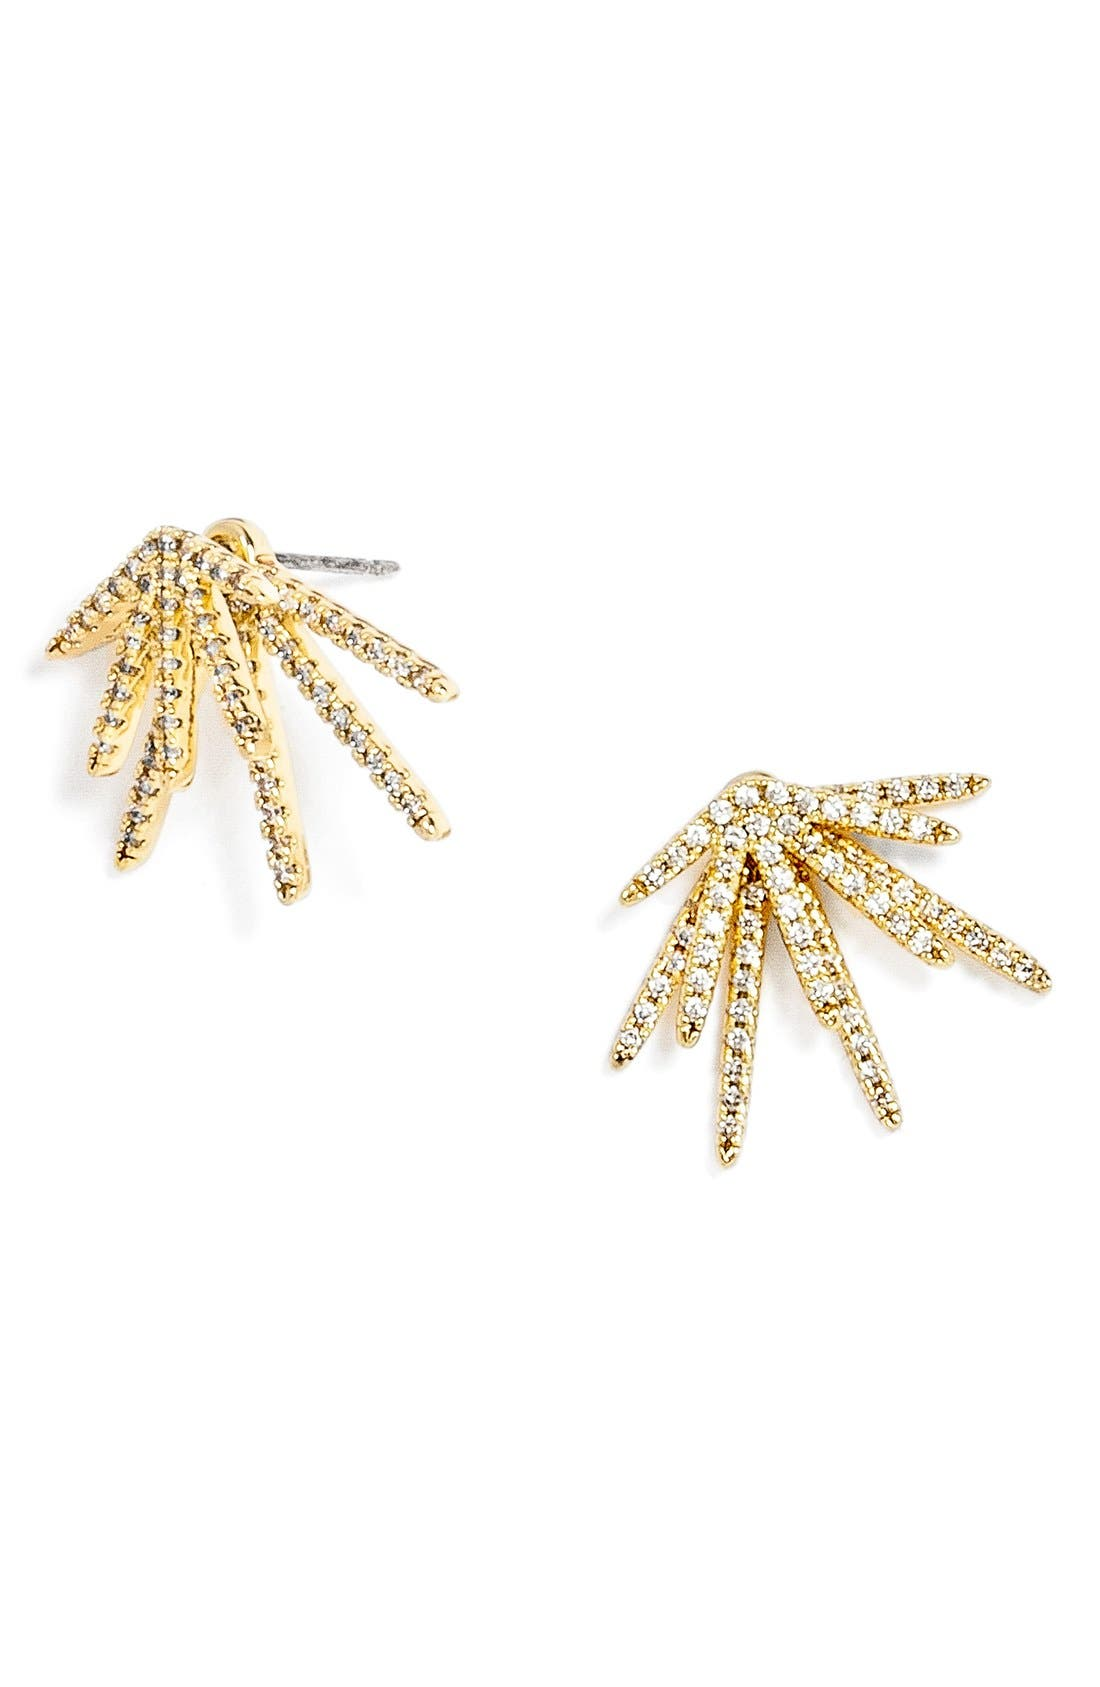 Main Image - BaubleBar 'Firecracker' Ear Jackets